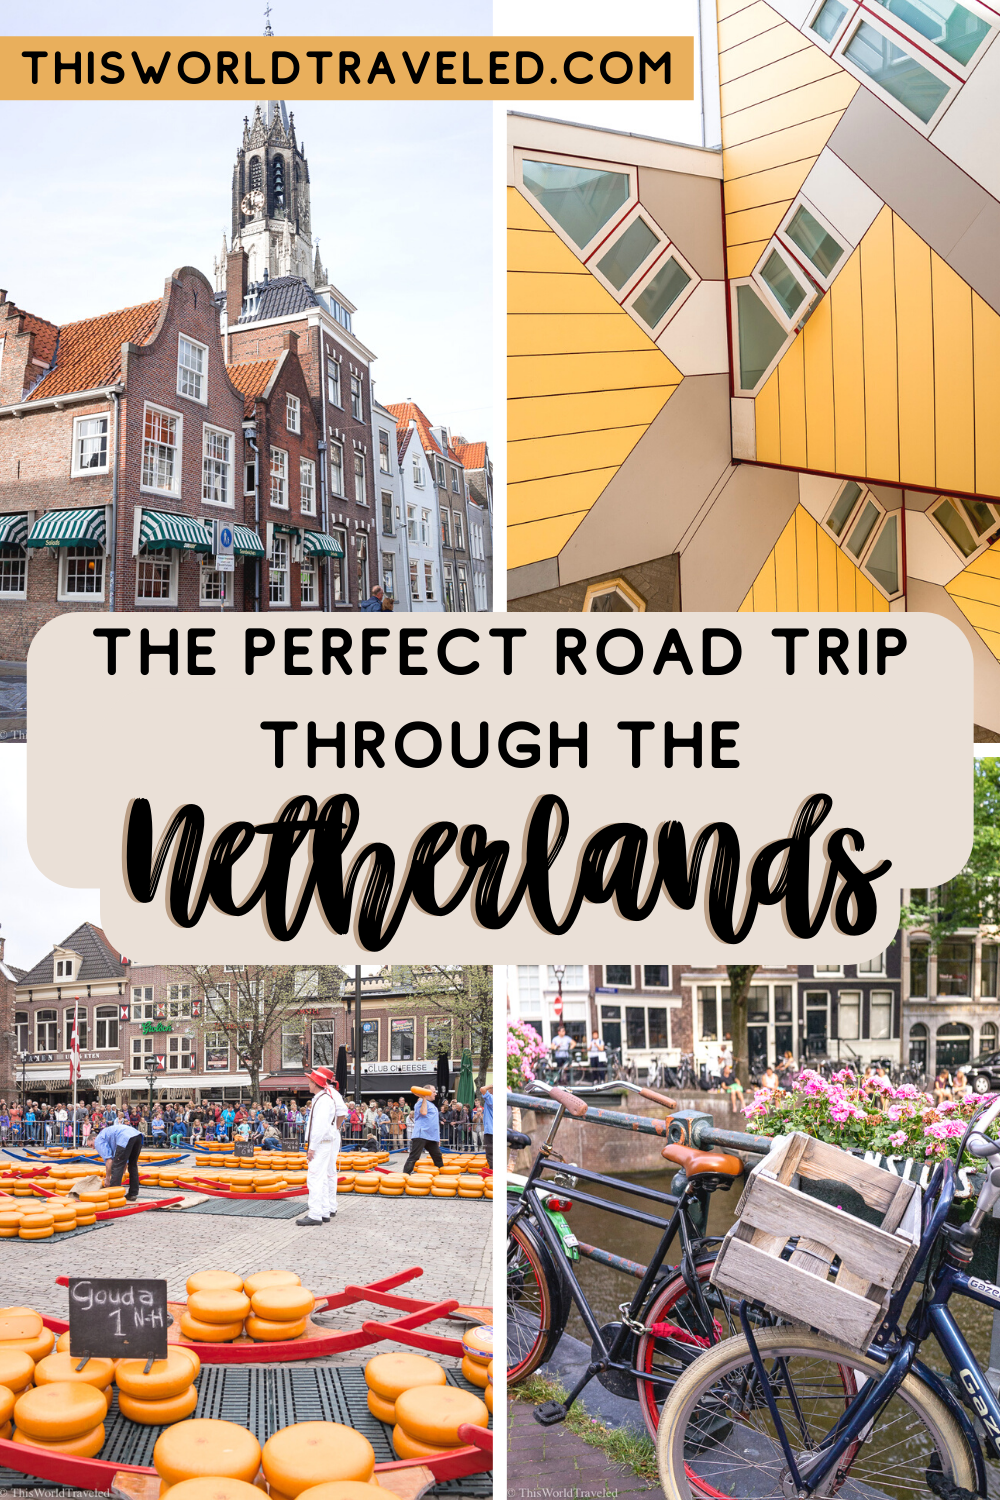 The Perfect Road Trip Through the Netherlands